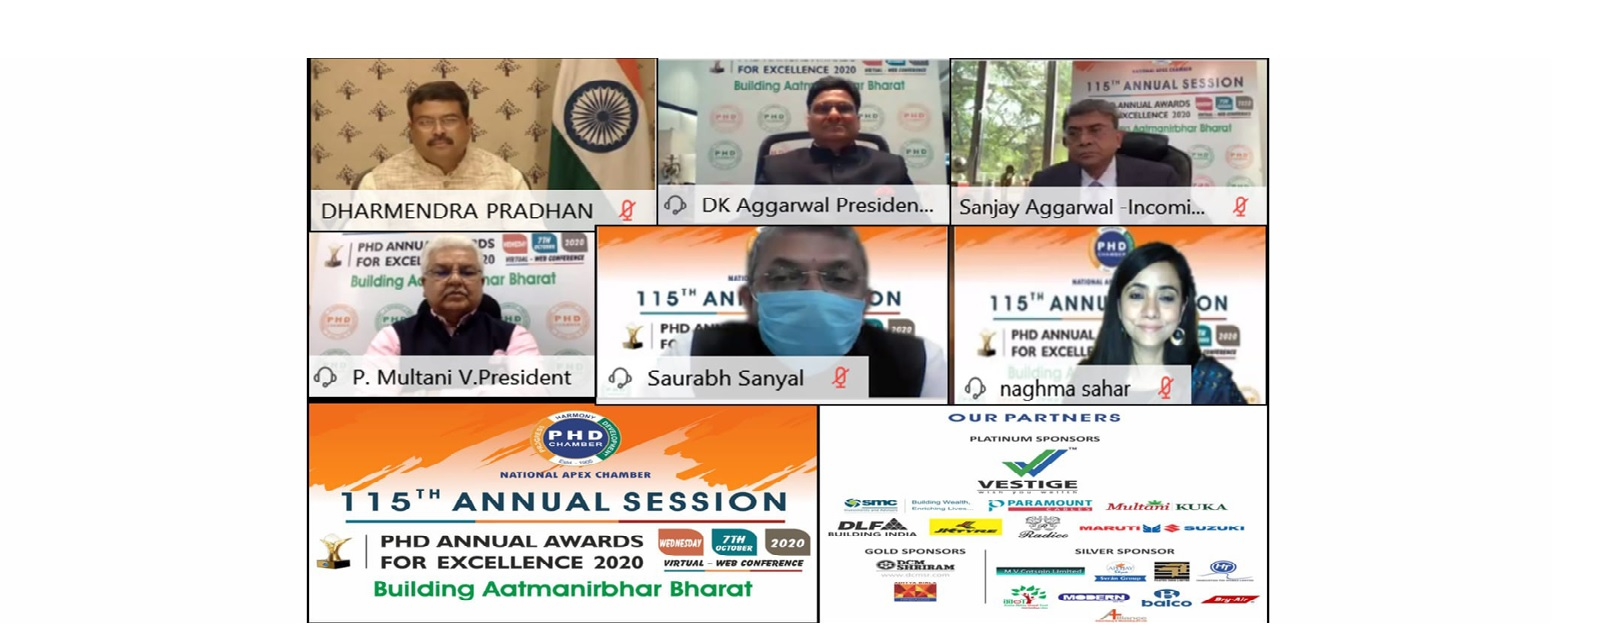 4th Session – Building Aatmanirbhar Bharat